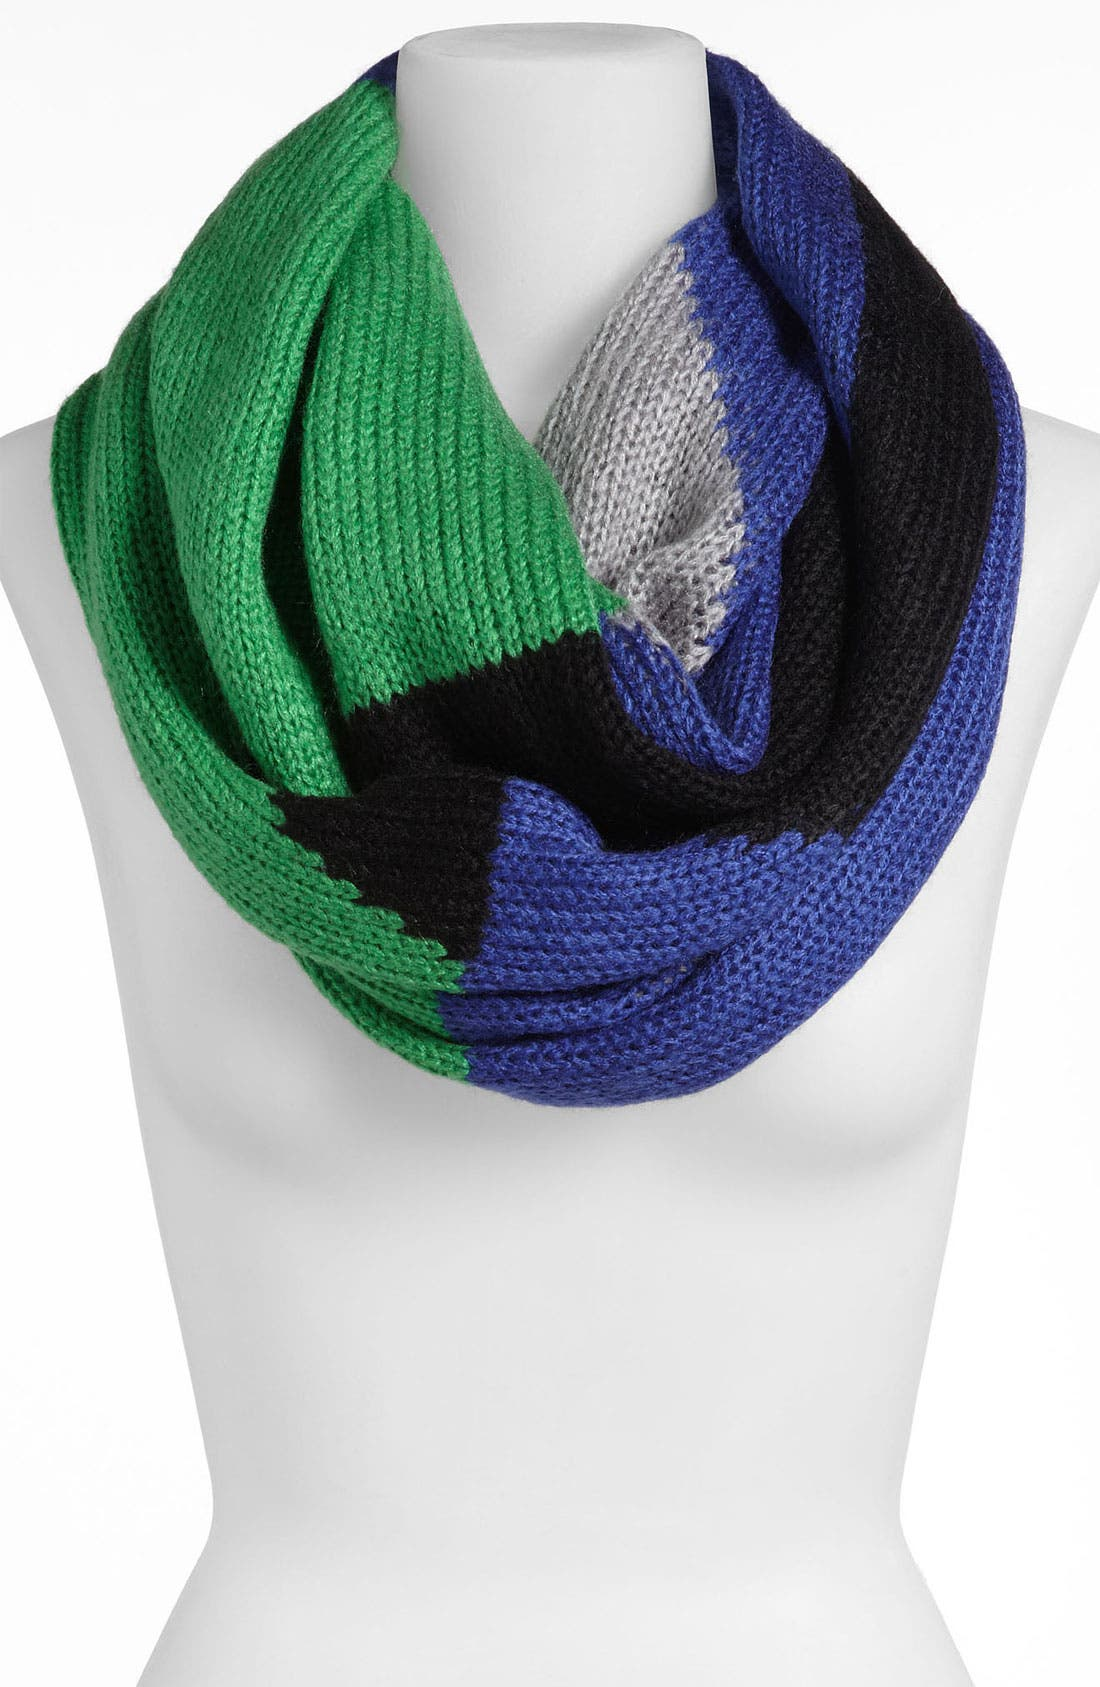 Alternate Image 1 Selected - Steve Madden 'Block Party' Infinity Scarf